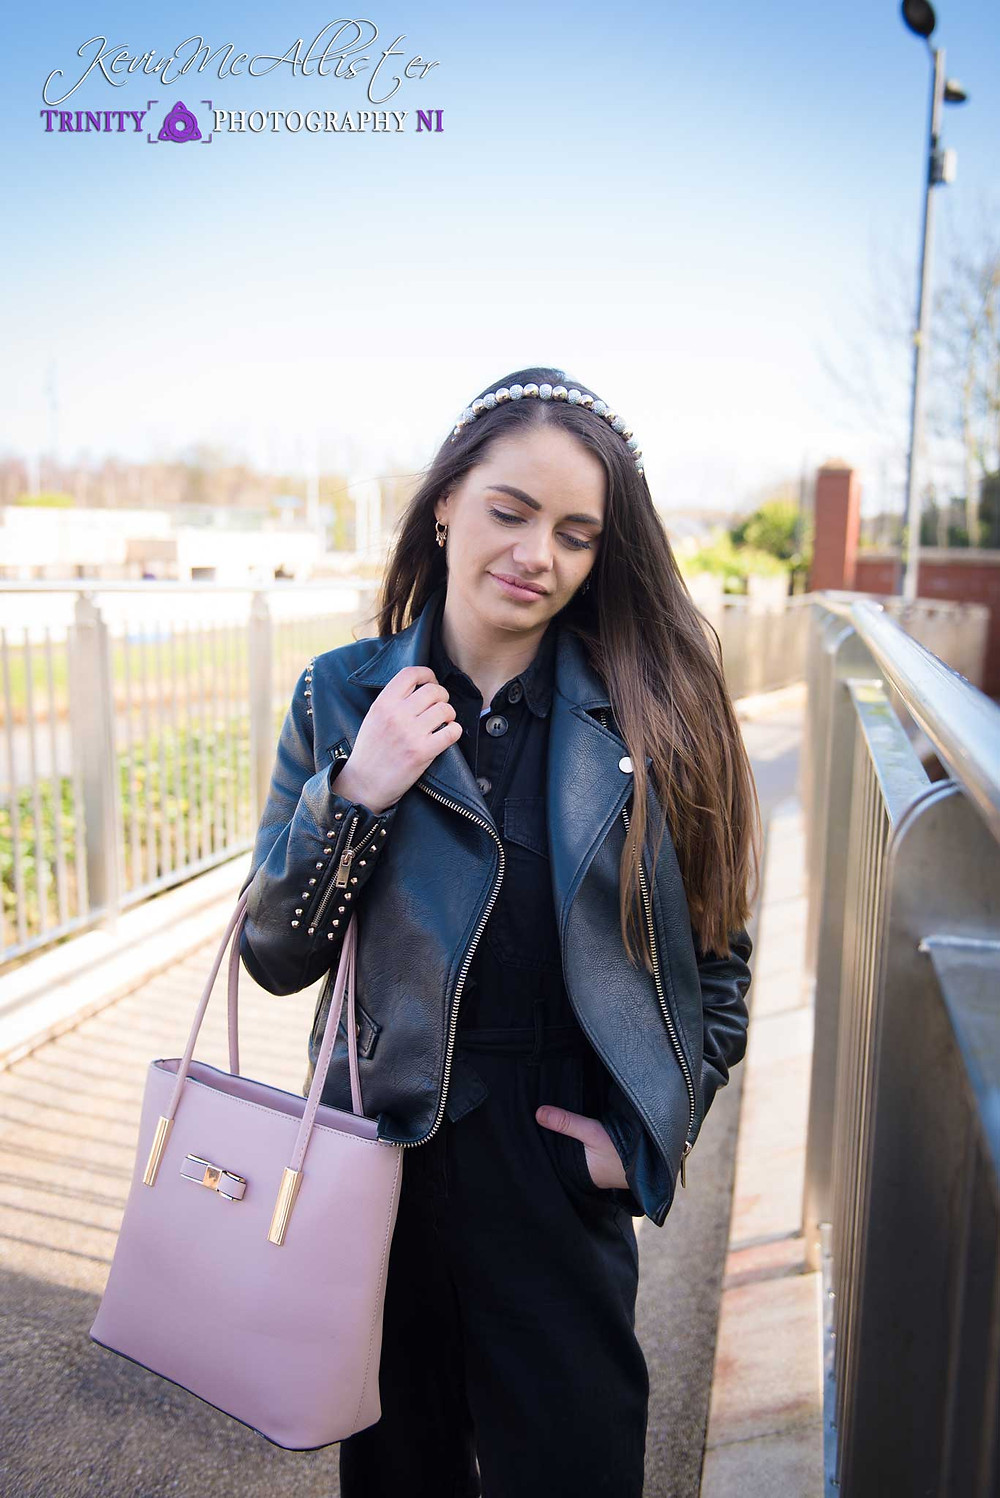 model with black leather jacket and pink handbag, sparkly headband.